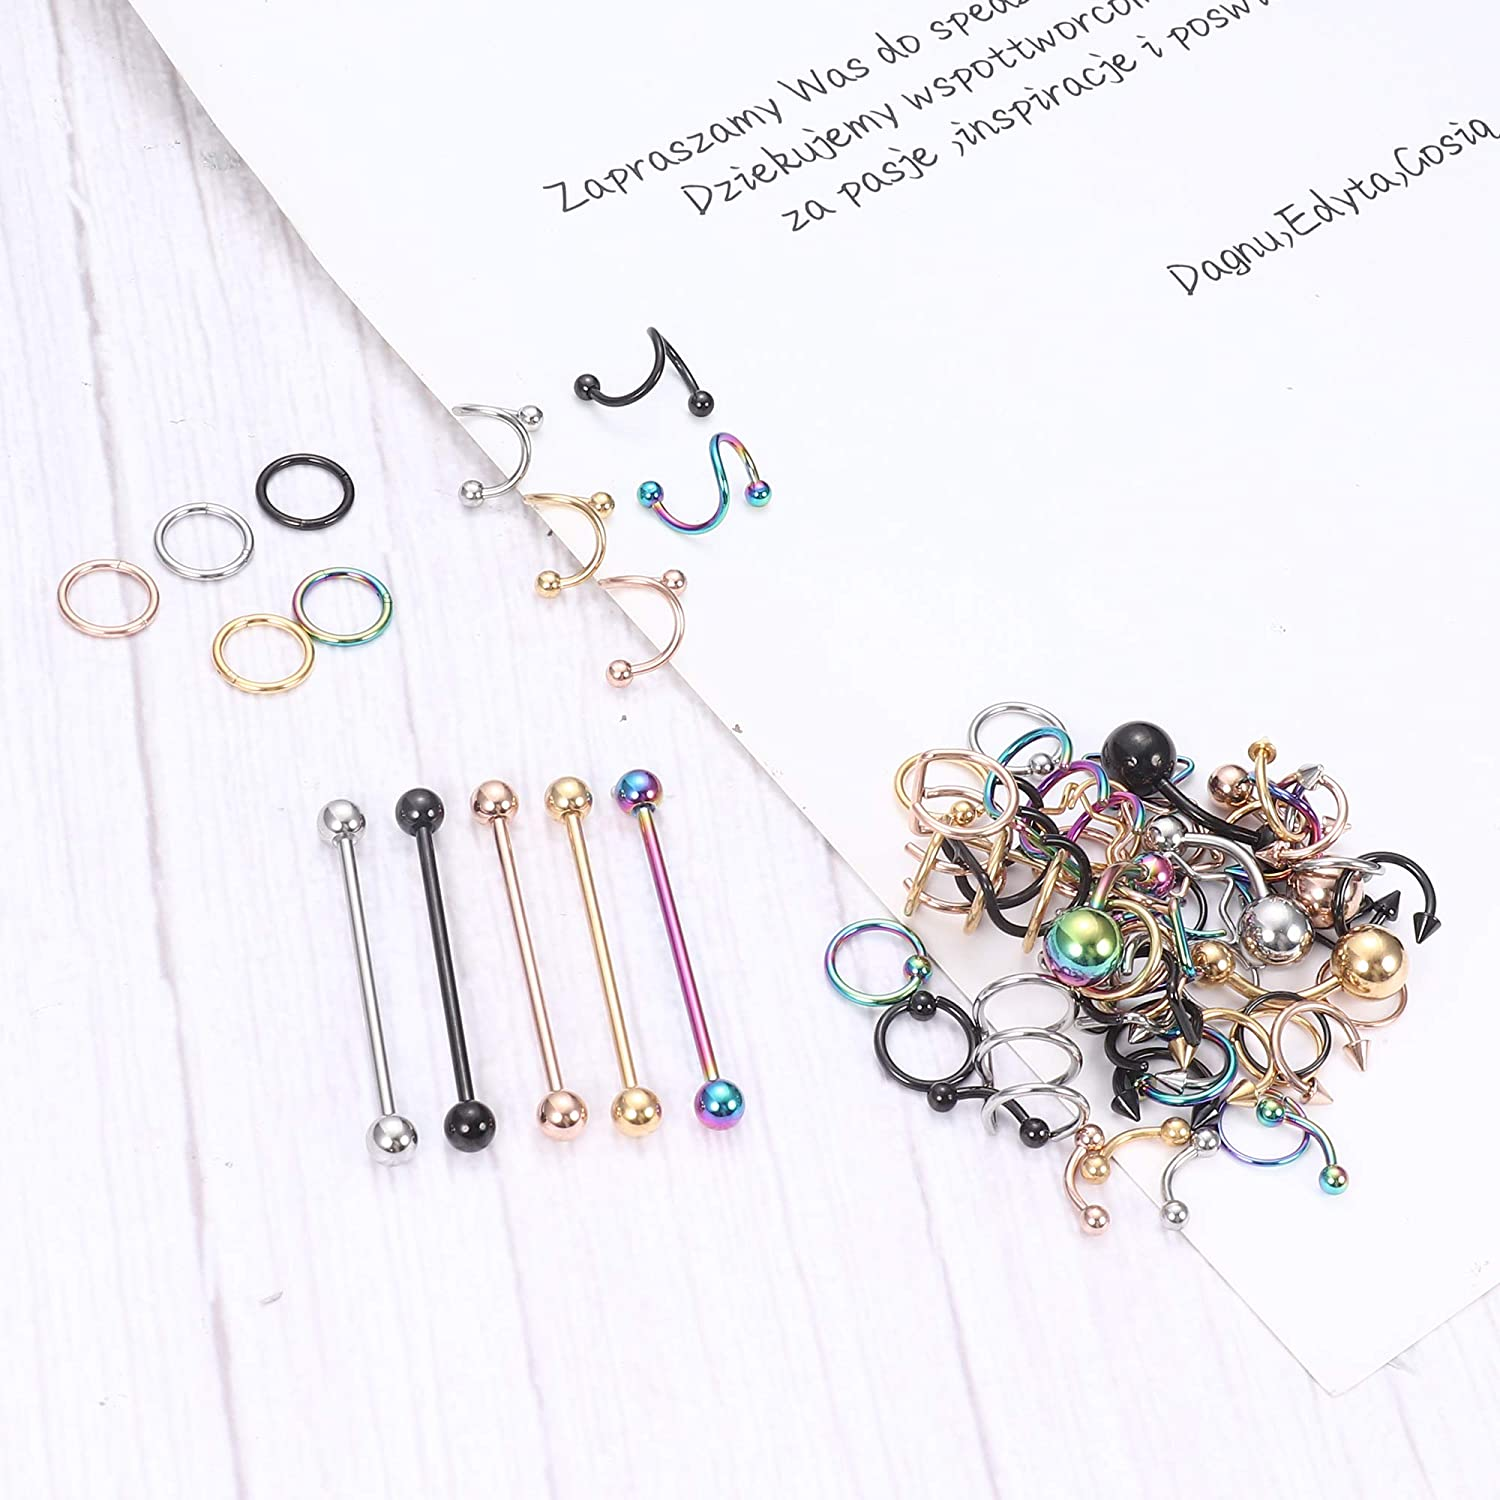 Drperfect 100PCS Piercing Kit Professional Surgical Steel 14G 16G 20G Piercing Needles Nose Septum Eyebrow Lip Belly Button Ring Cartilage Tragus Helix Daith Rook Earring Body Jewelry Piercing Tools